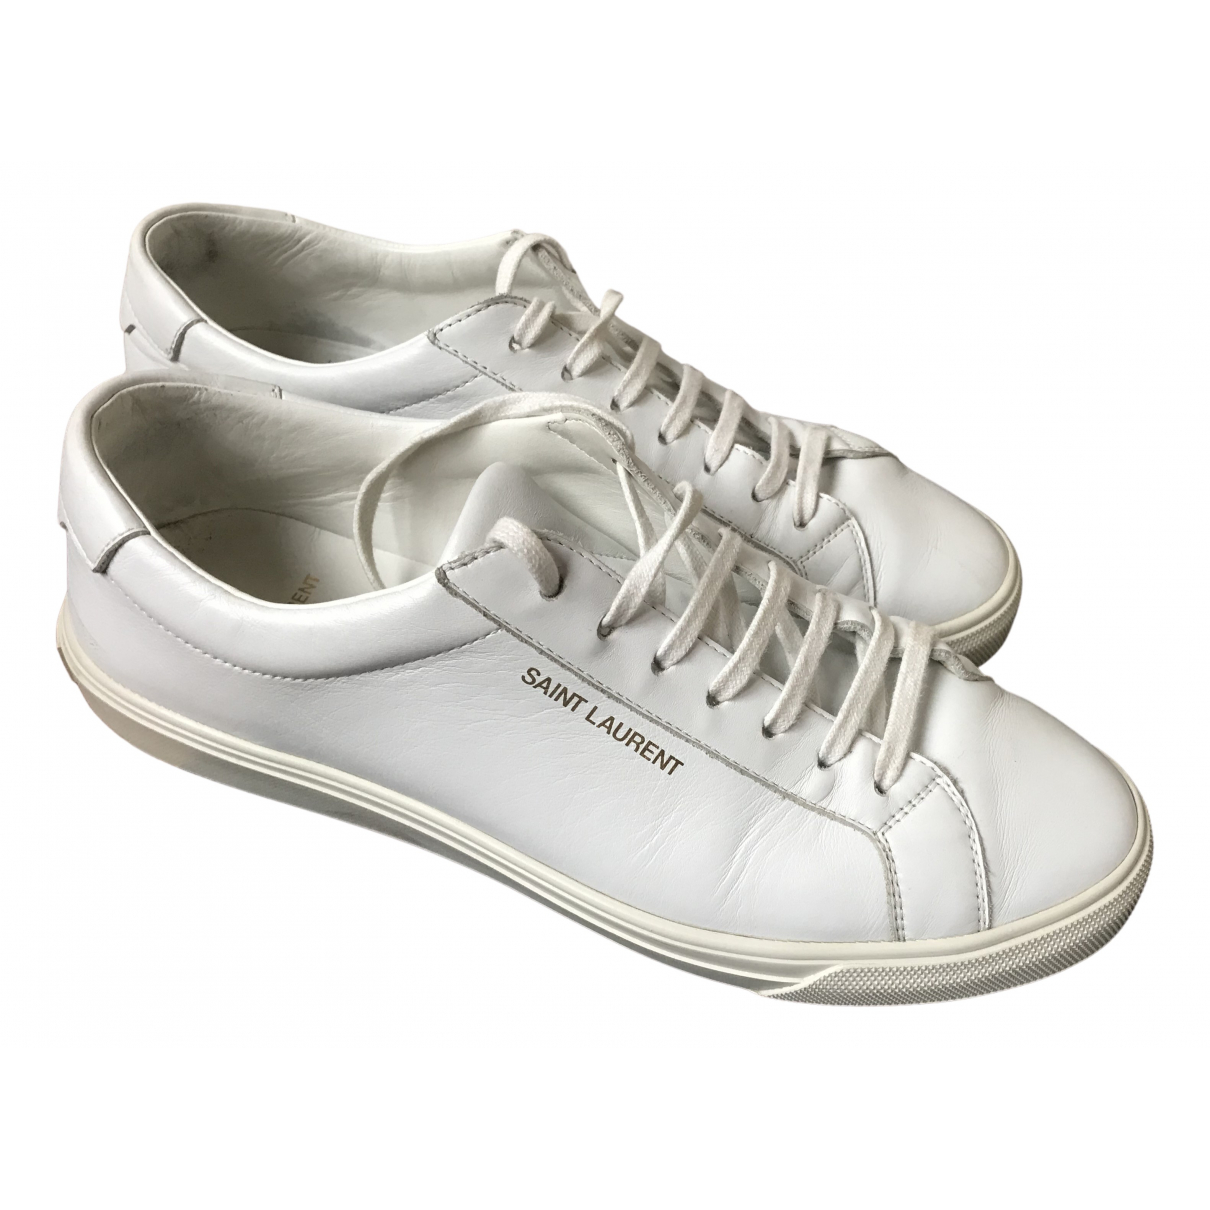 Saint Laurent - Baskets Court pour femme en cuir - blanc